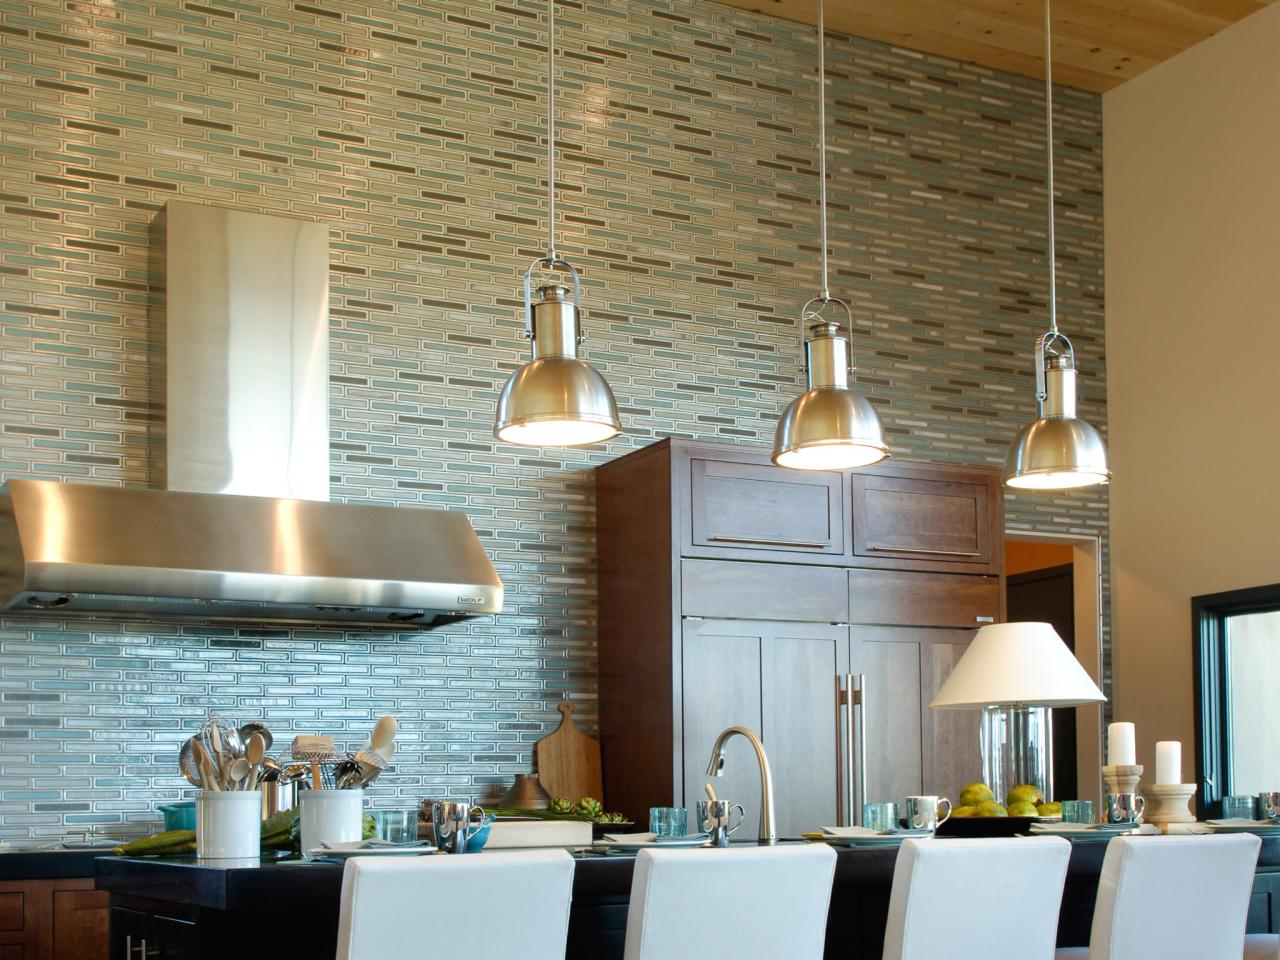 75 kitchen backsplash ideas for 2019 tile glass metal etc. Black Bedroom Furniture Sets. Home Design Ideas